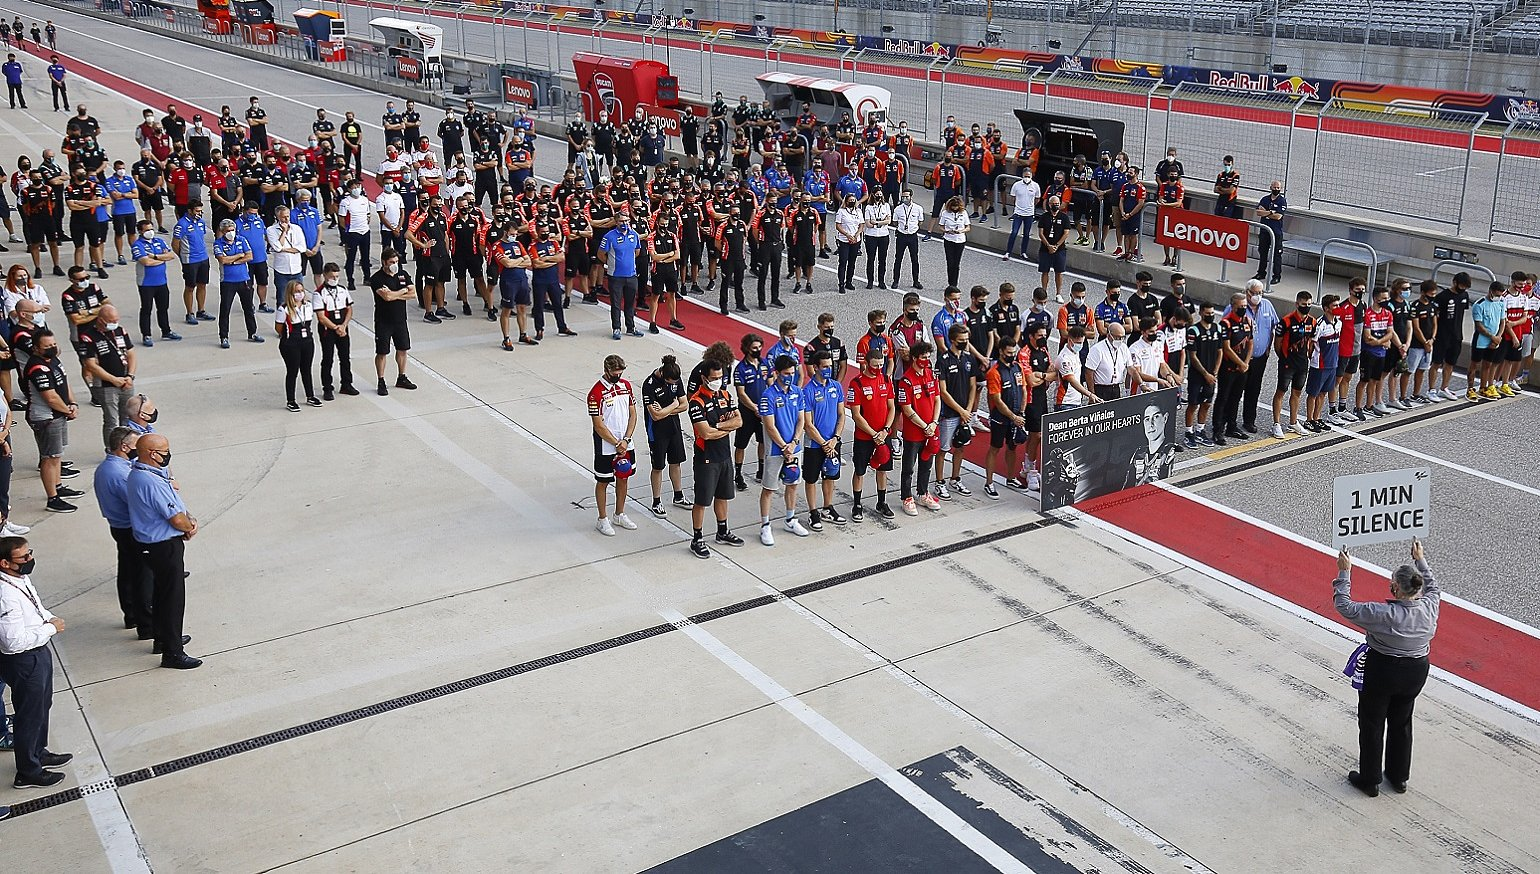 In response to teenage racers' deaths, FIM and Dorna raise age limits